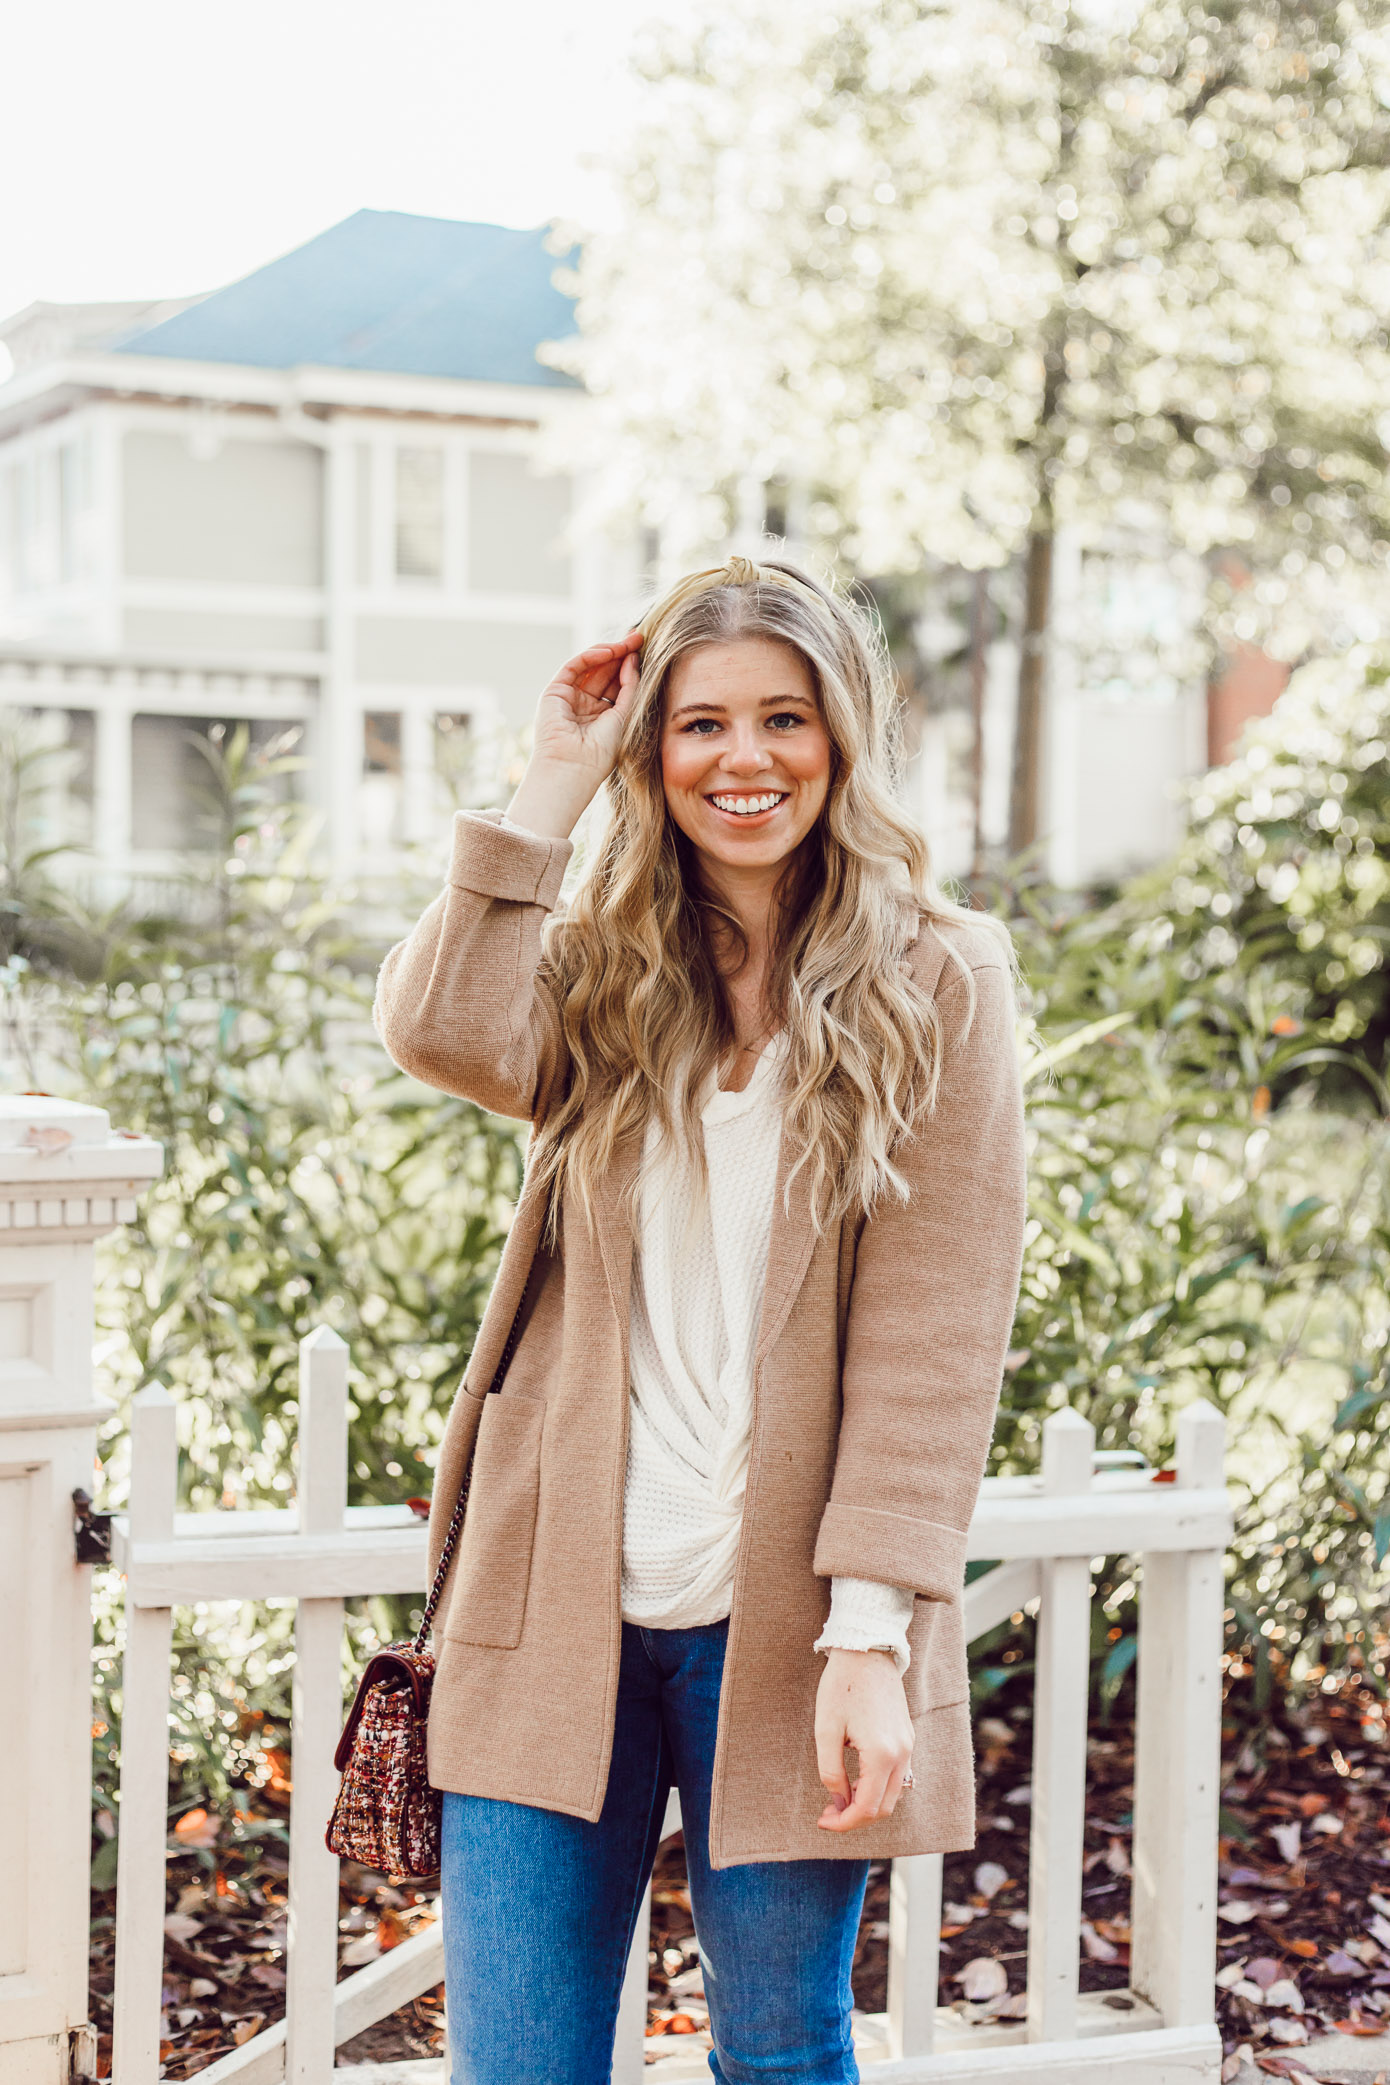 Casual Thanksgiving Outfit Inspiration | Styling a Headband for Fall, Casual Sweater Blazer featured on Louella Reese